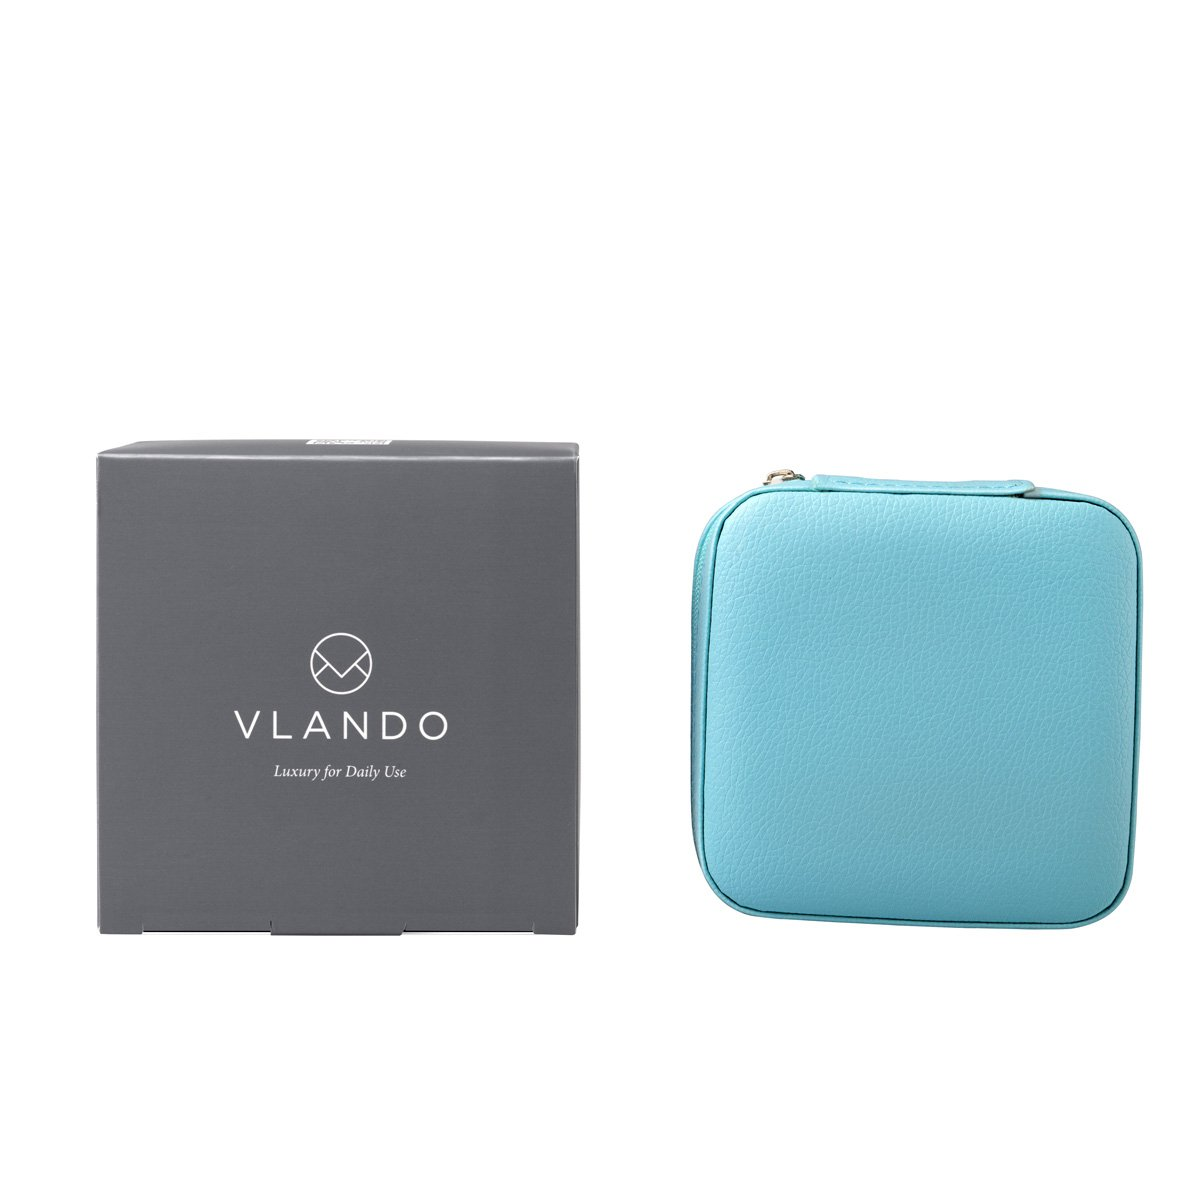 Vlando Small Faux Leather Travel Jewelry Box Organizer Display Storage Case for Rings Earrings Necklace (Blue) by Vlando (Image #7)